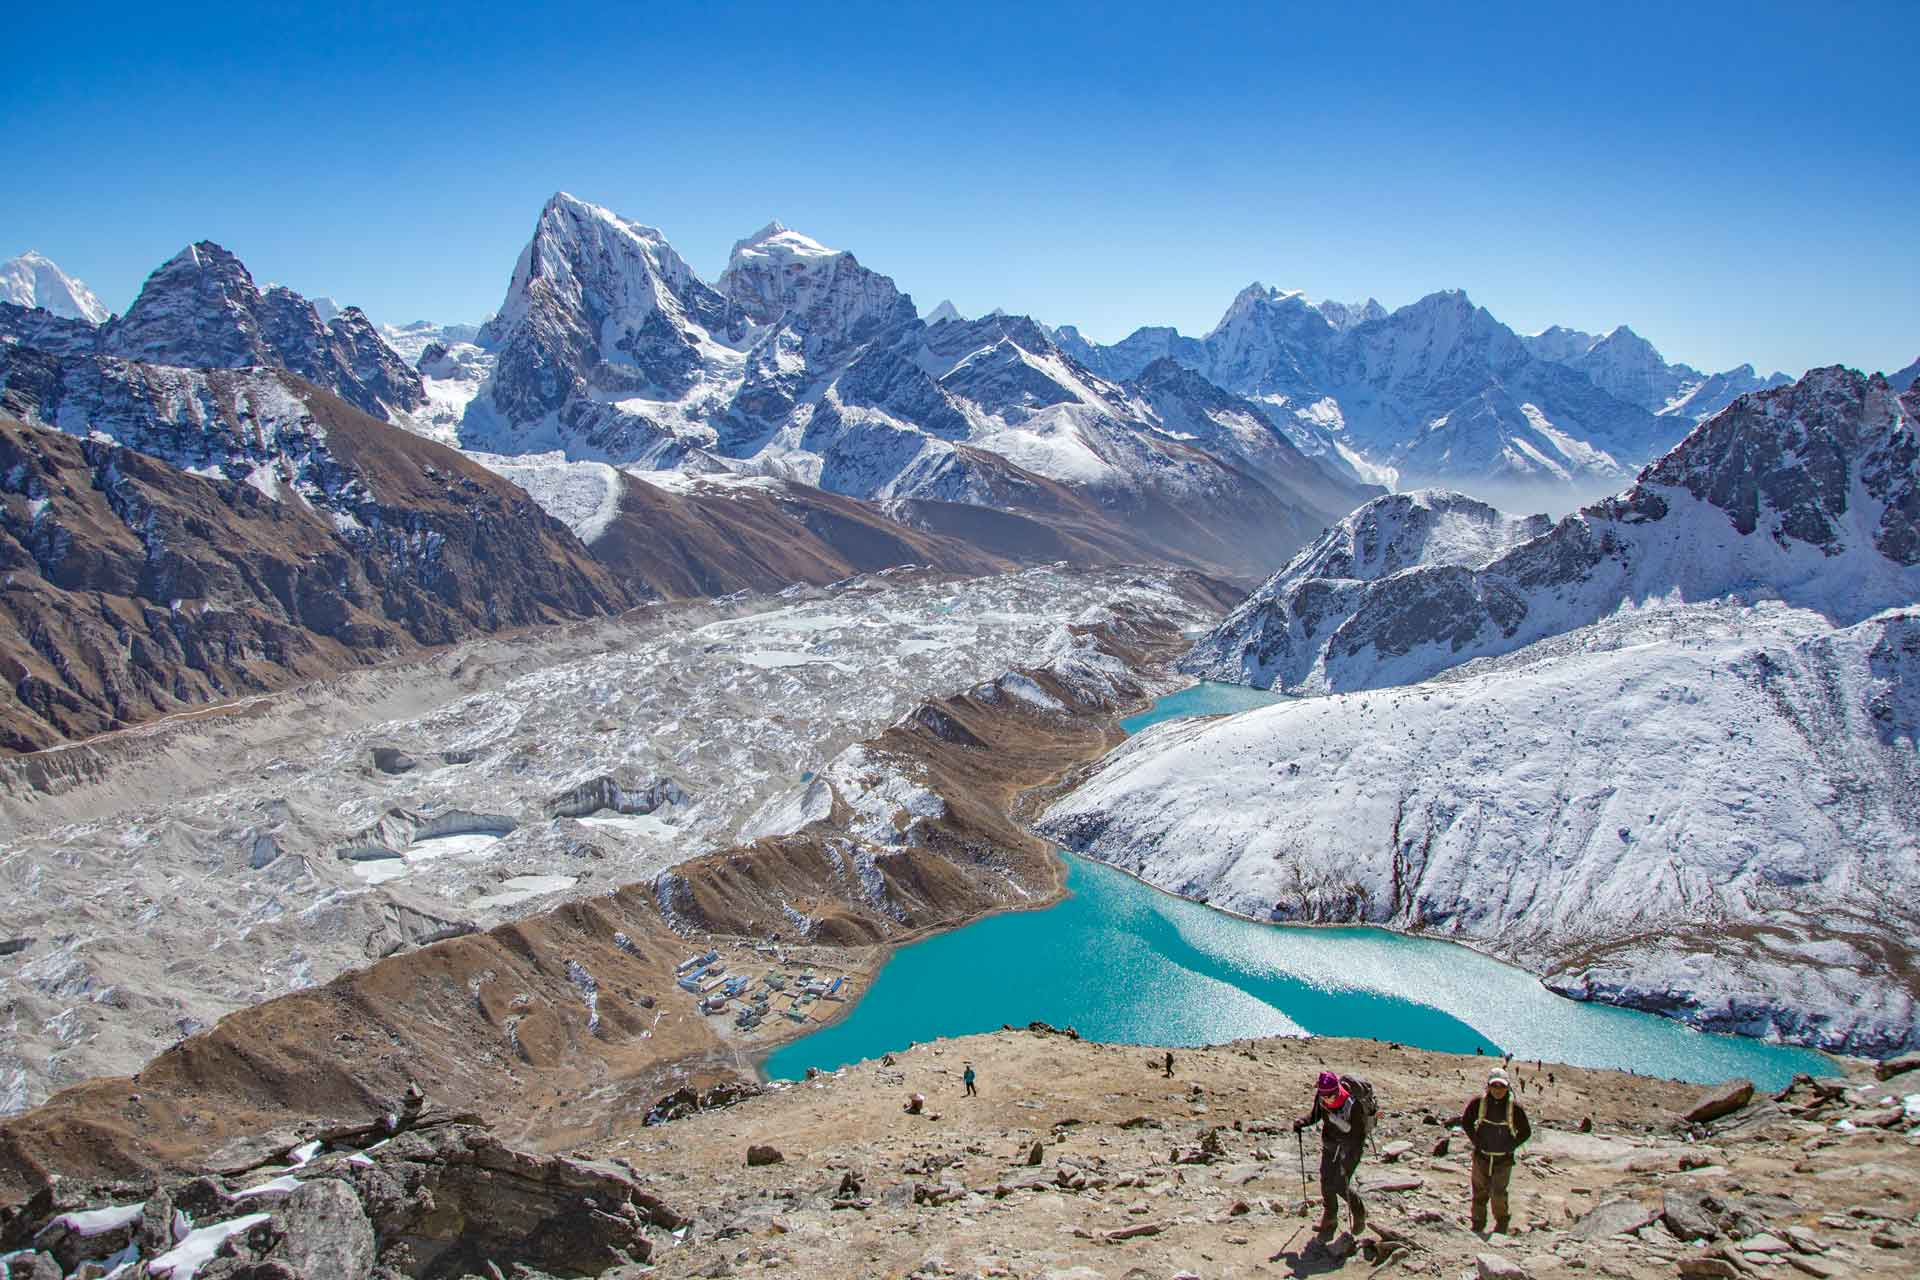 Jiri to Everest Base Camp Trekking – 22 Days